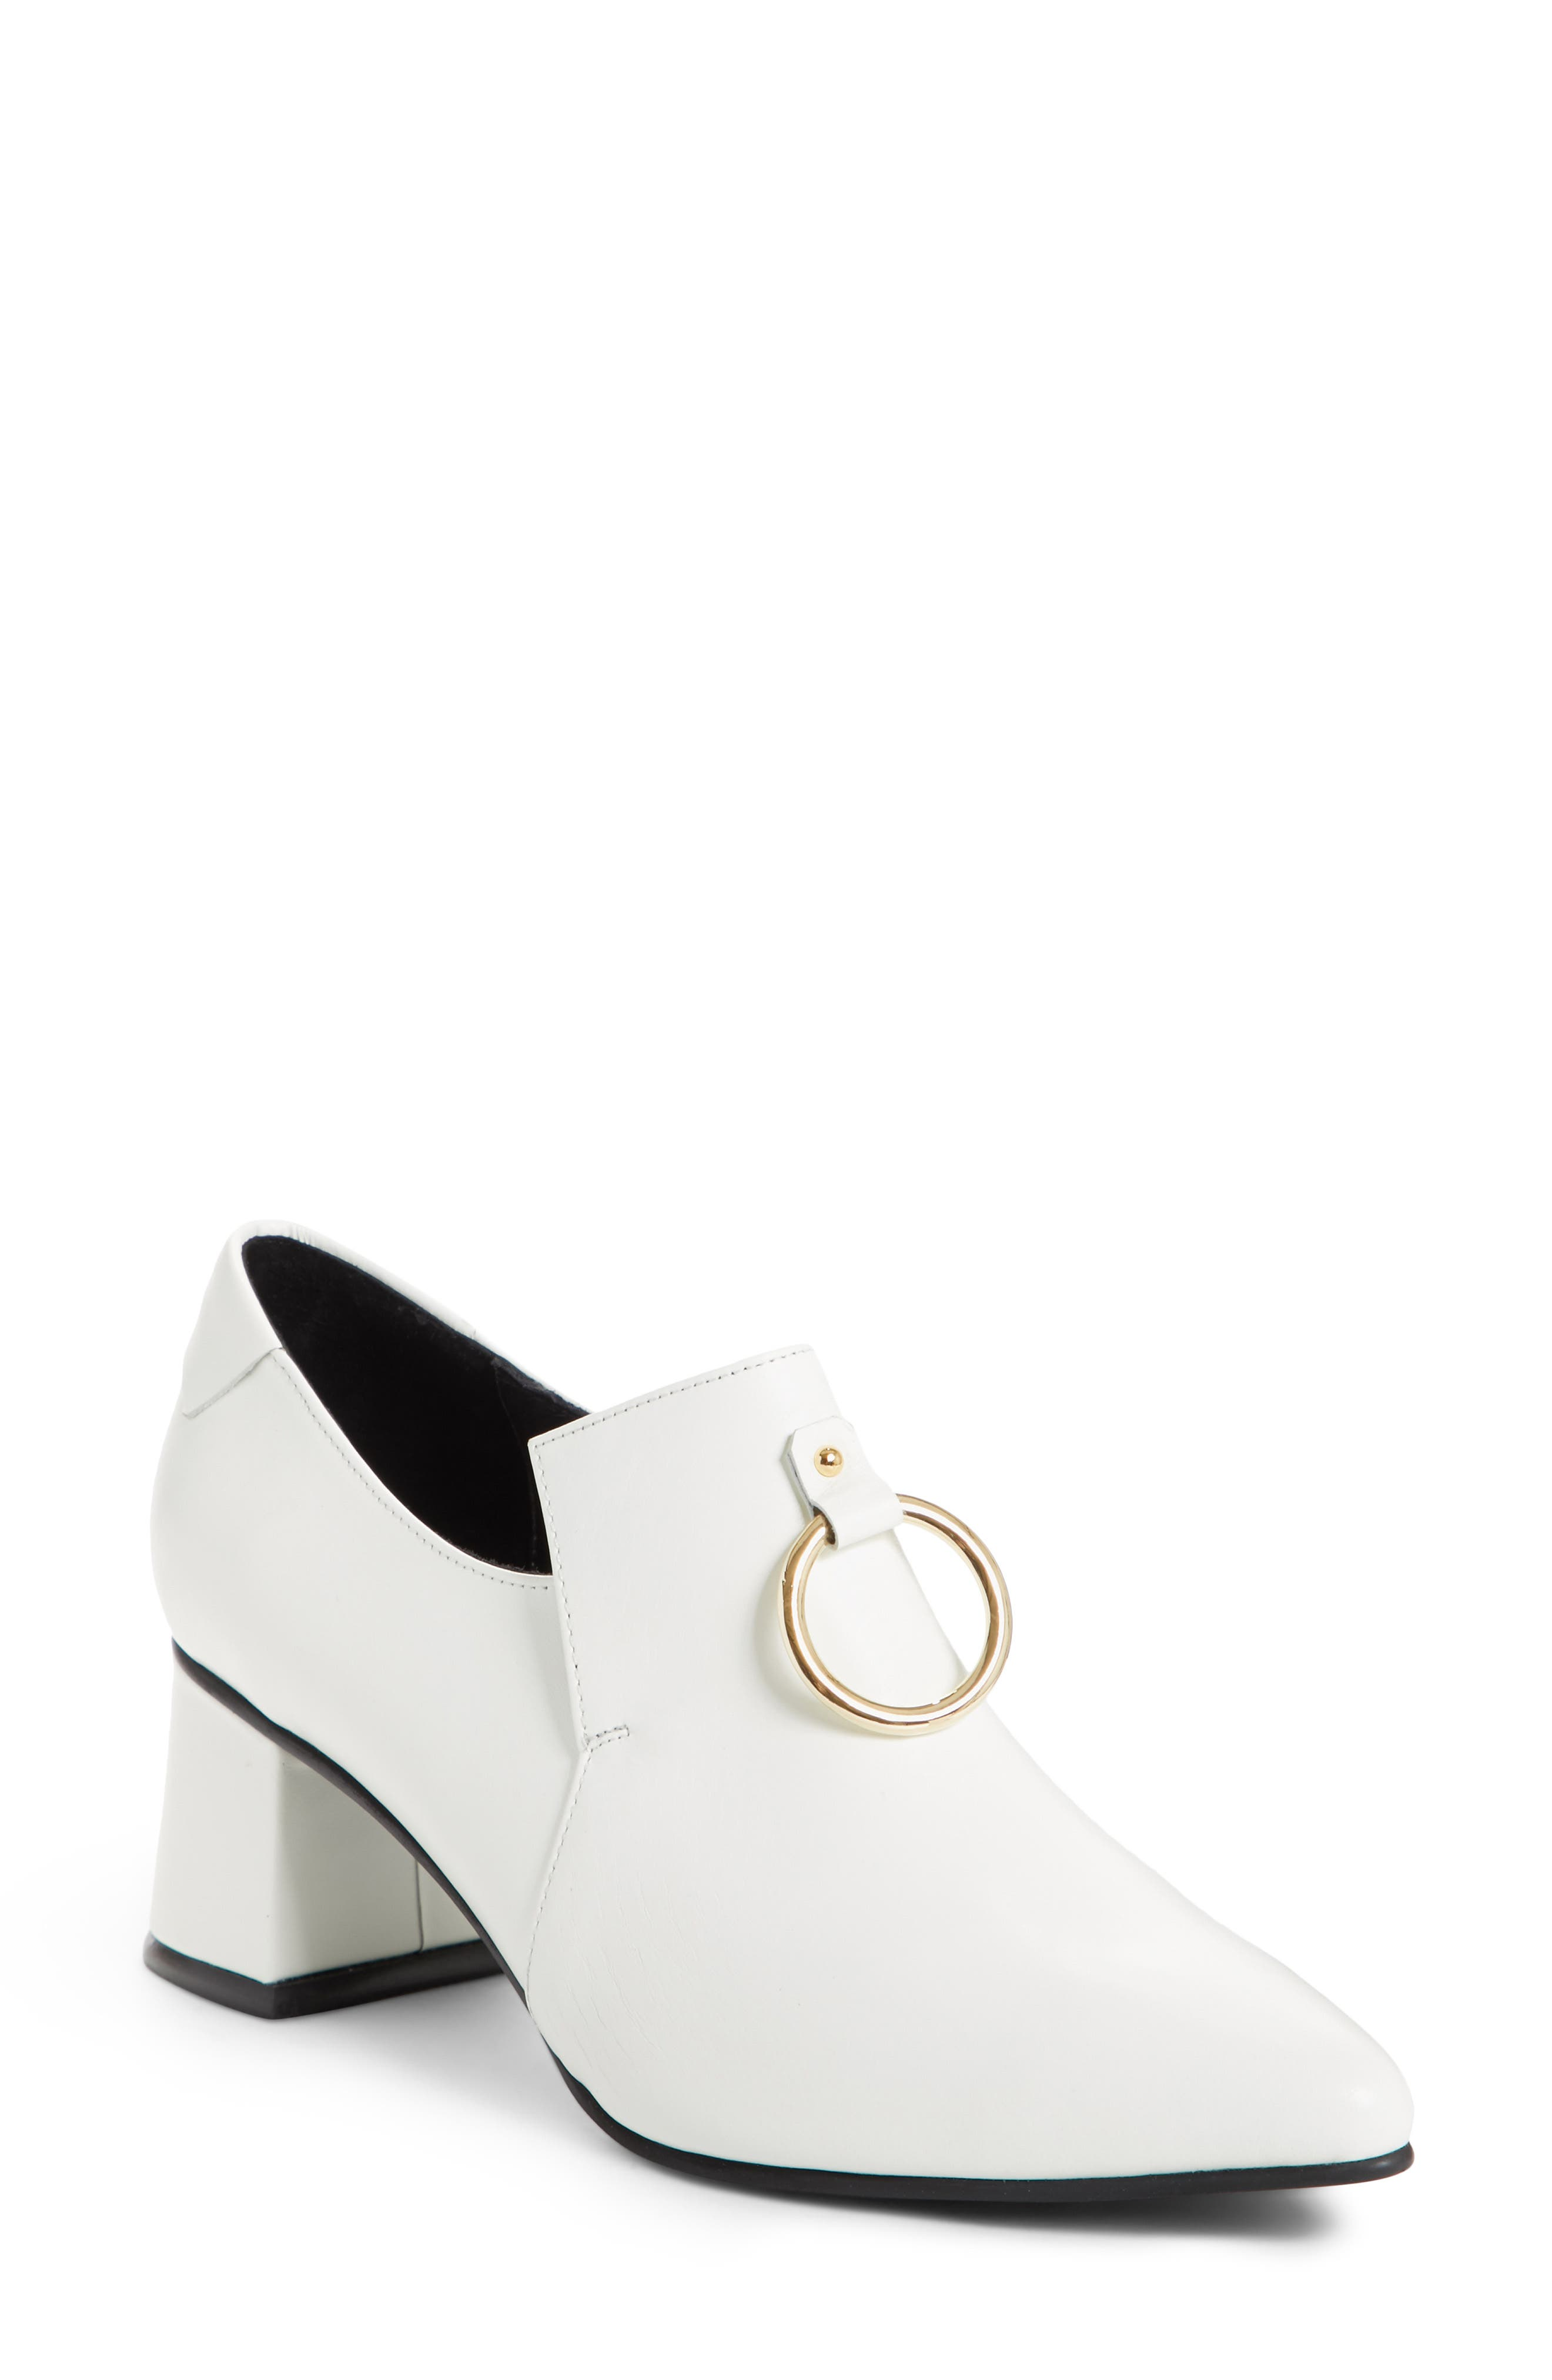 Ring Middle Loafer Pump,                         Main,                         color, 100